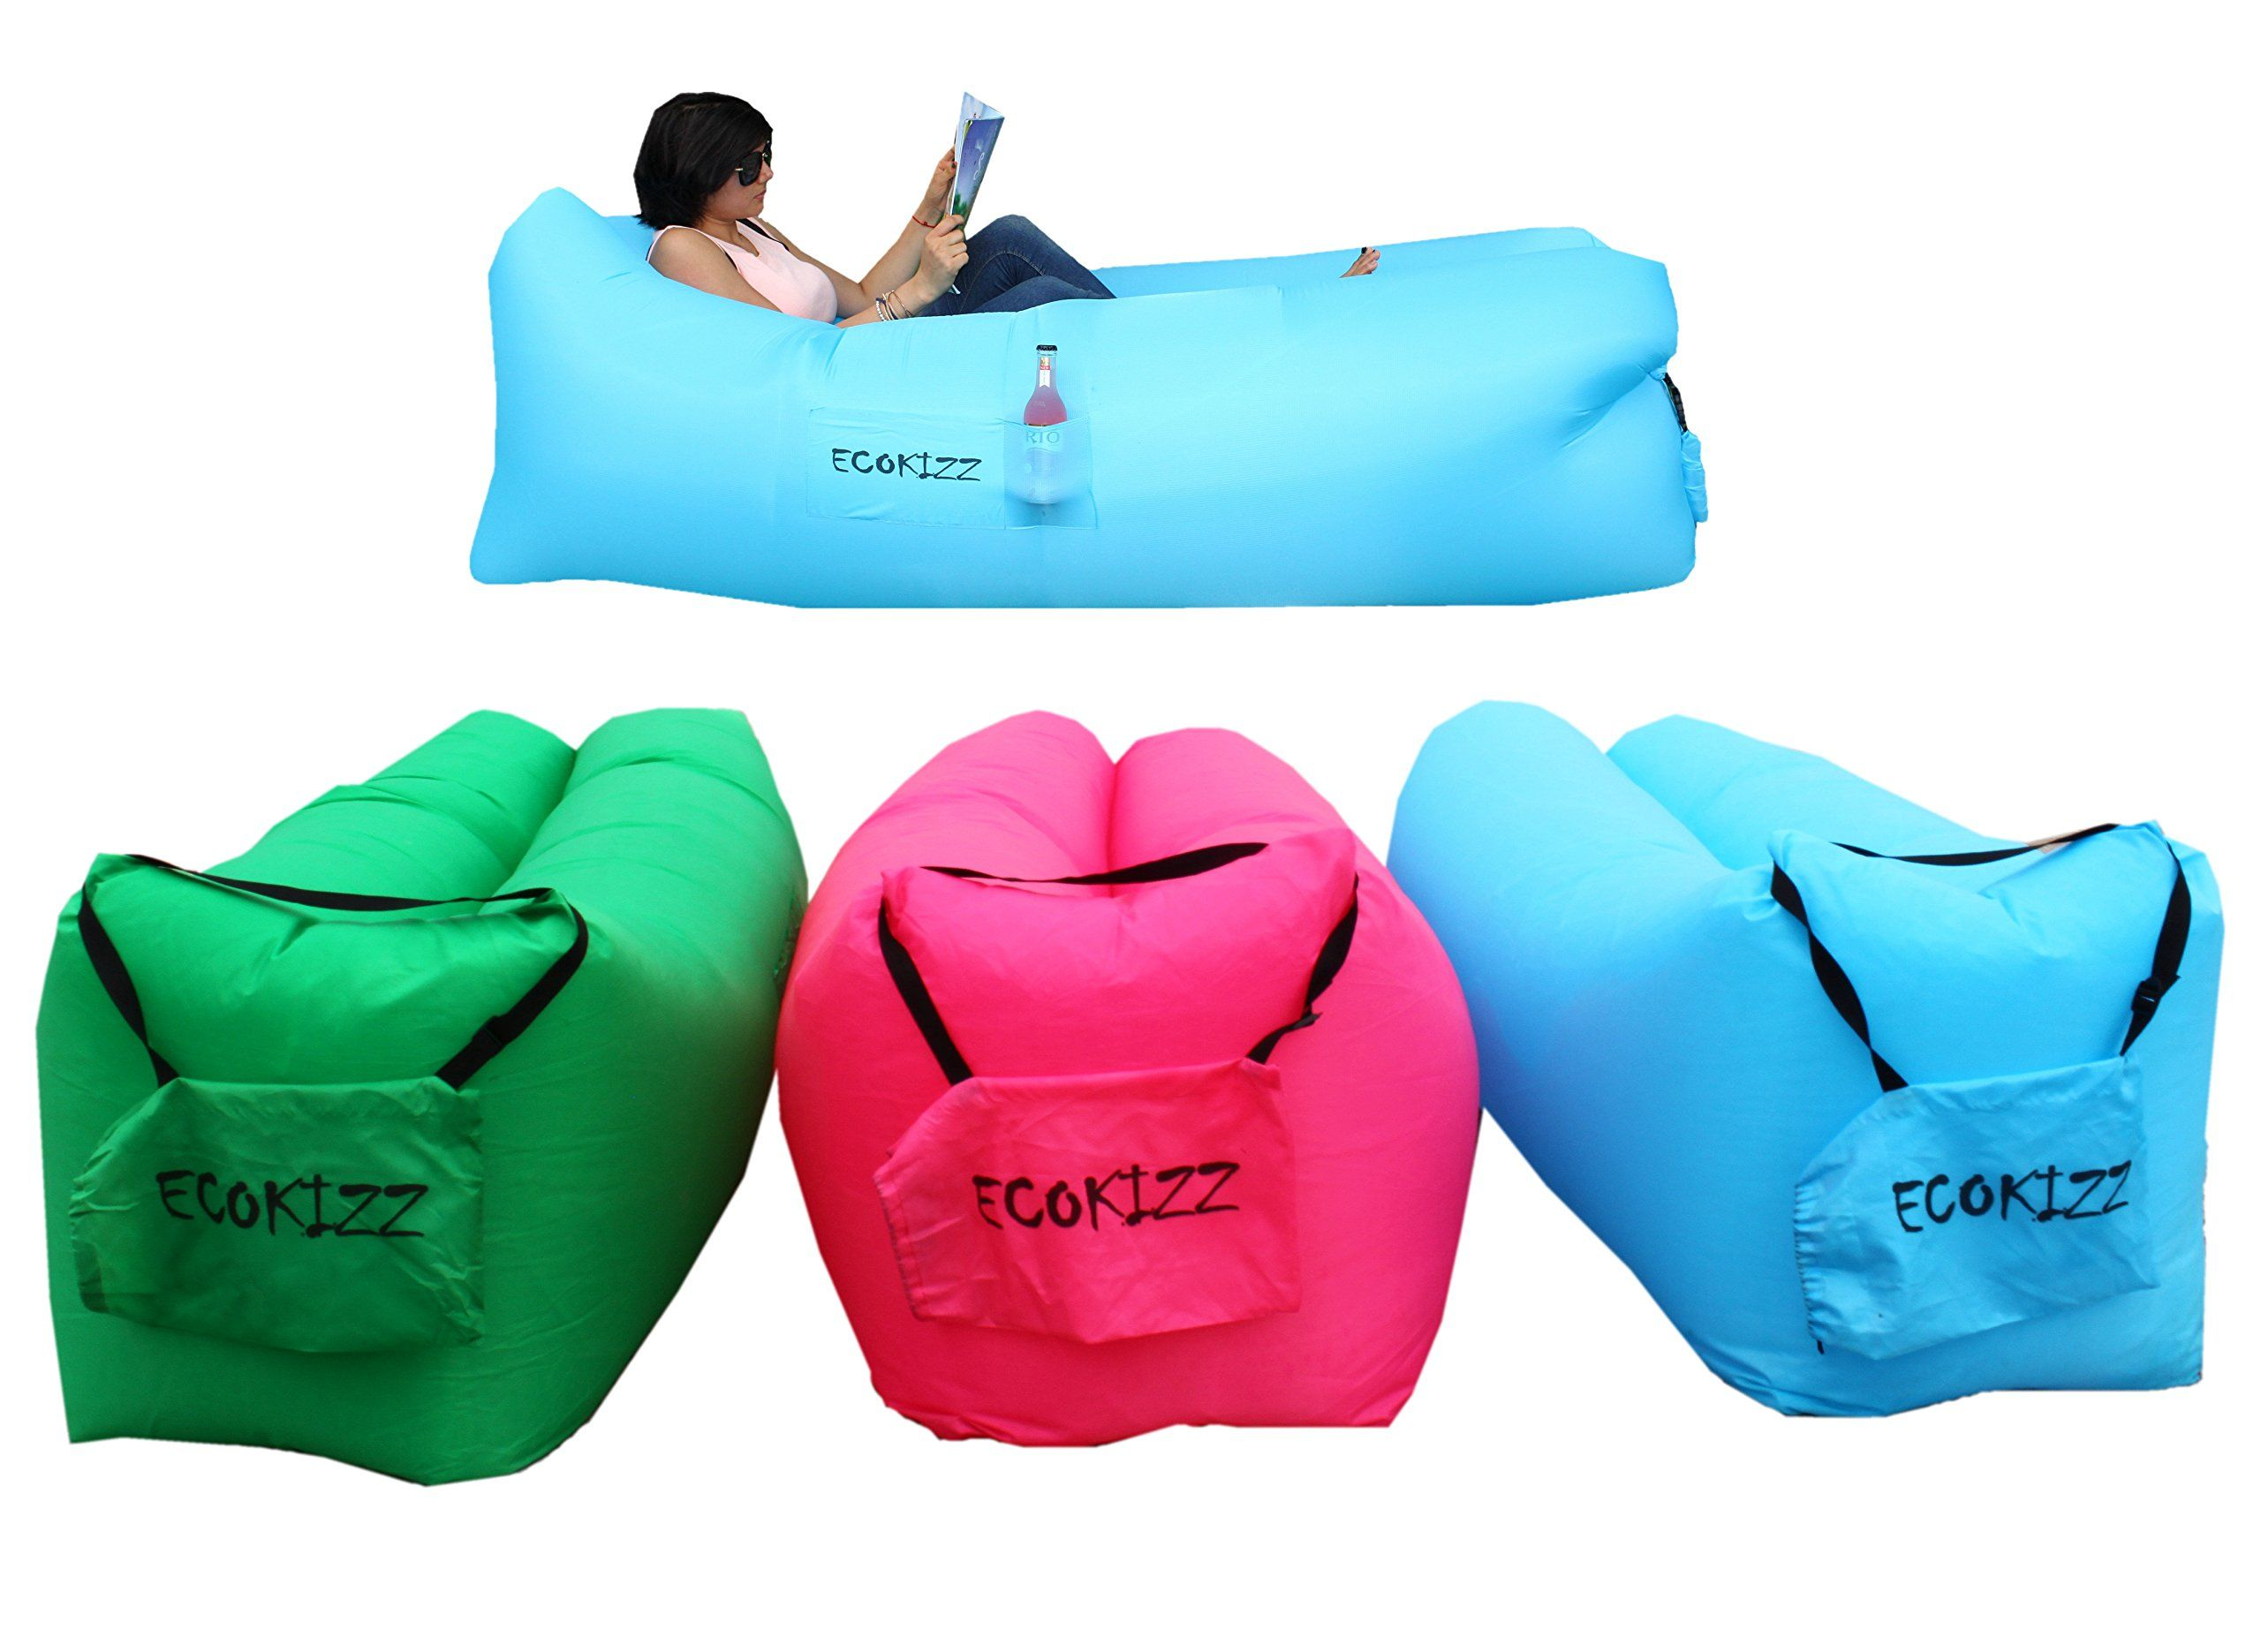 Ecokizz 2 0 Inflatable Lounger Bag Protable Air Sofa Bed With Carrying Bag For Various Use Ecokizz Design The Upgr Air Sofa Bed Inflatable Lounger Lounger